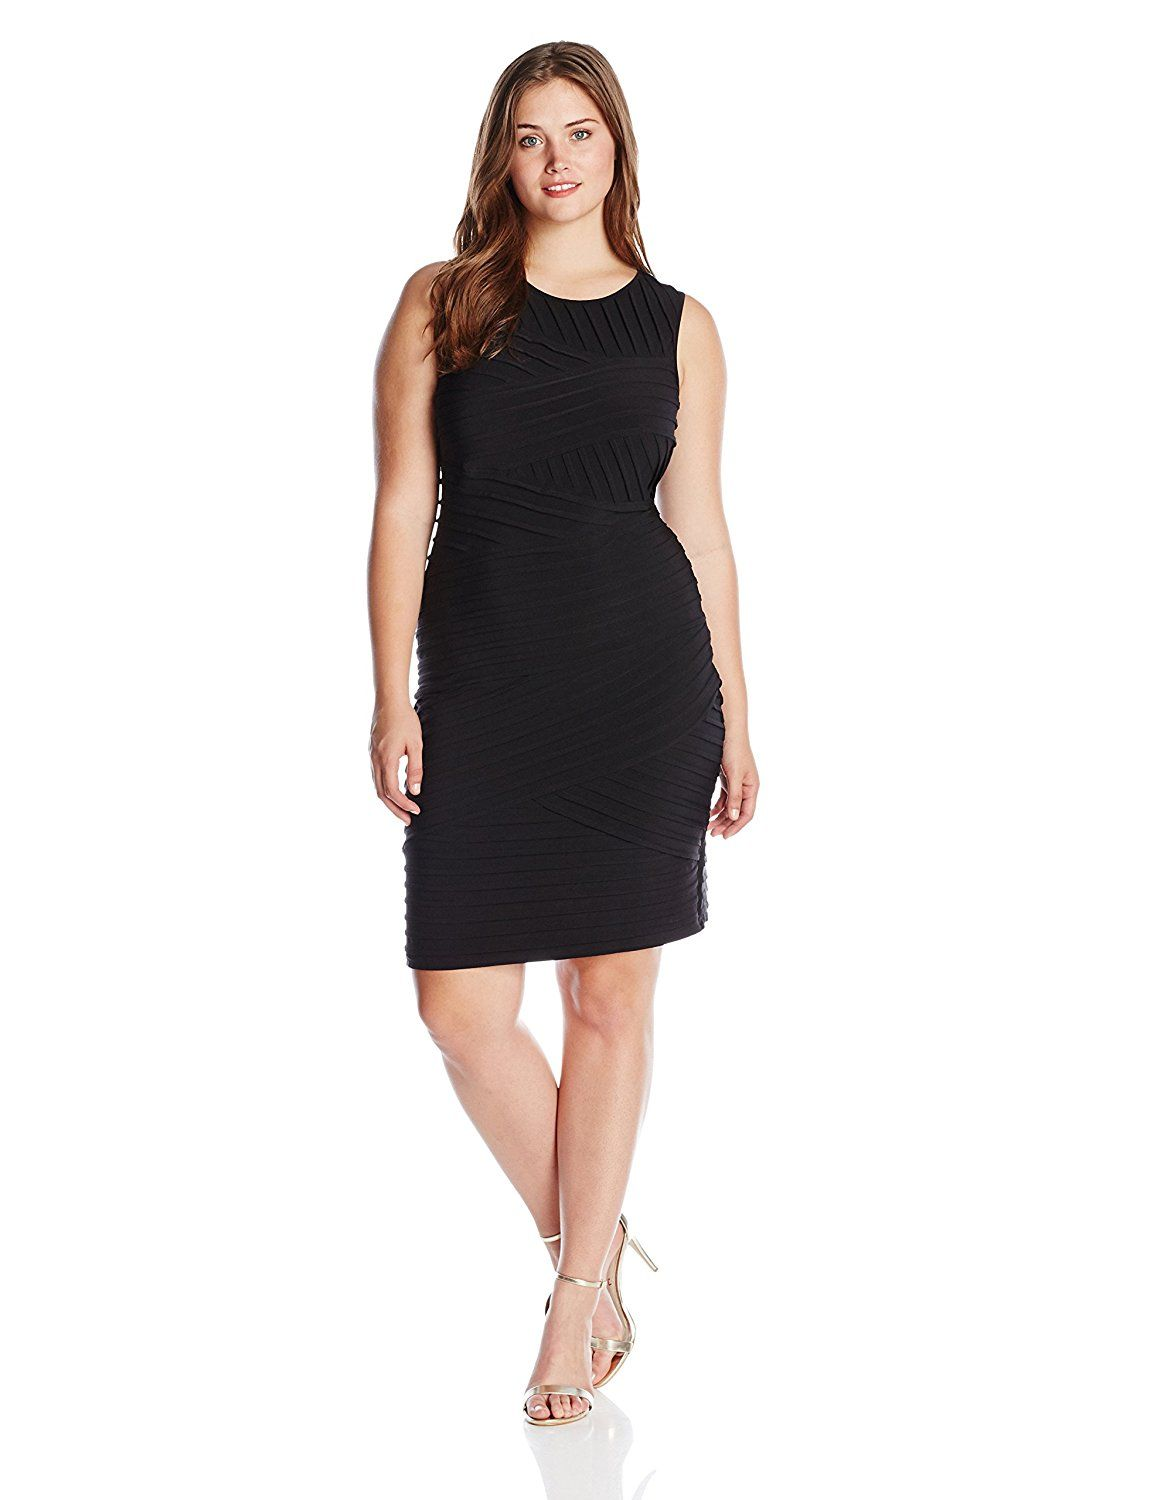 Calvin Klein Women s Plus Size Sleeveless Sheath Dress Trust me